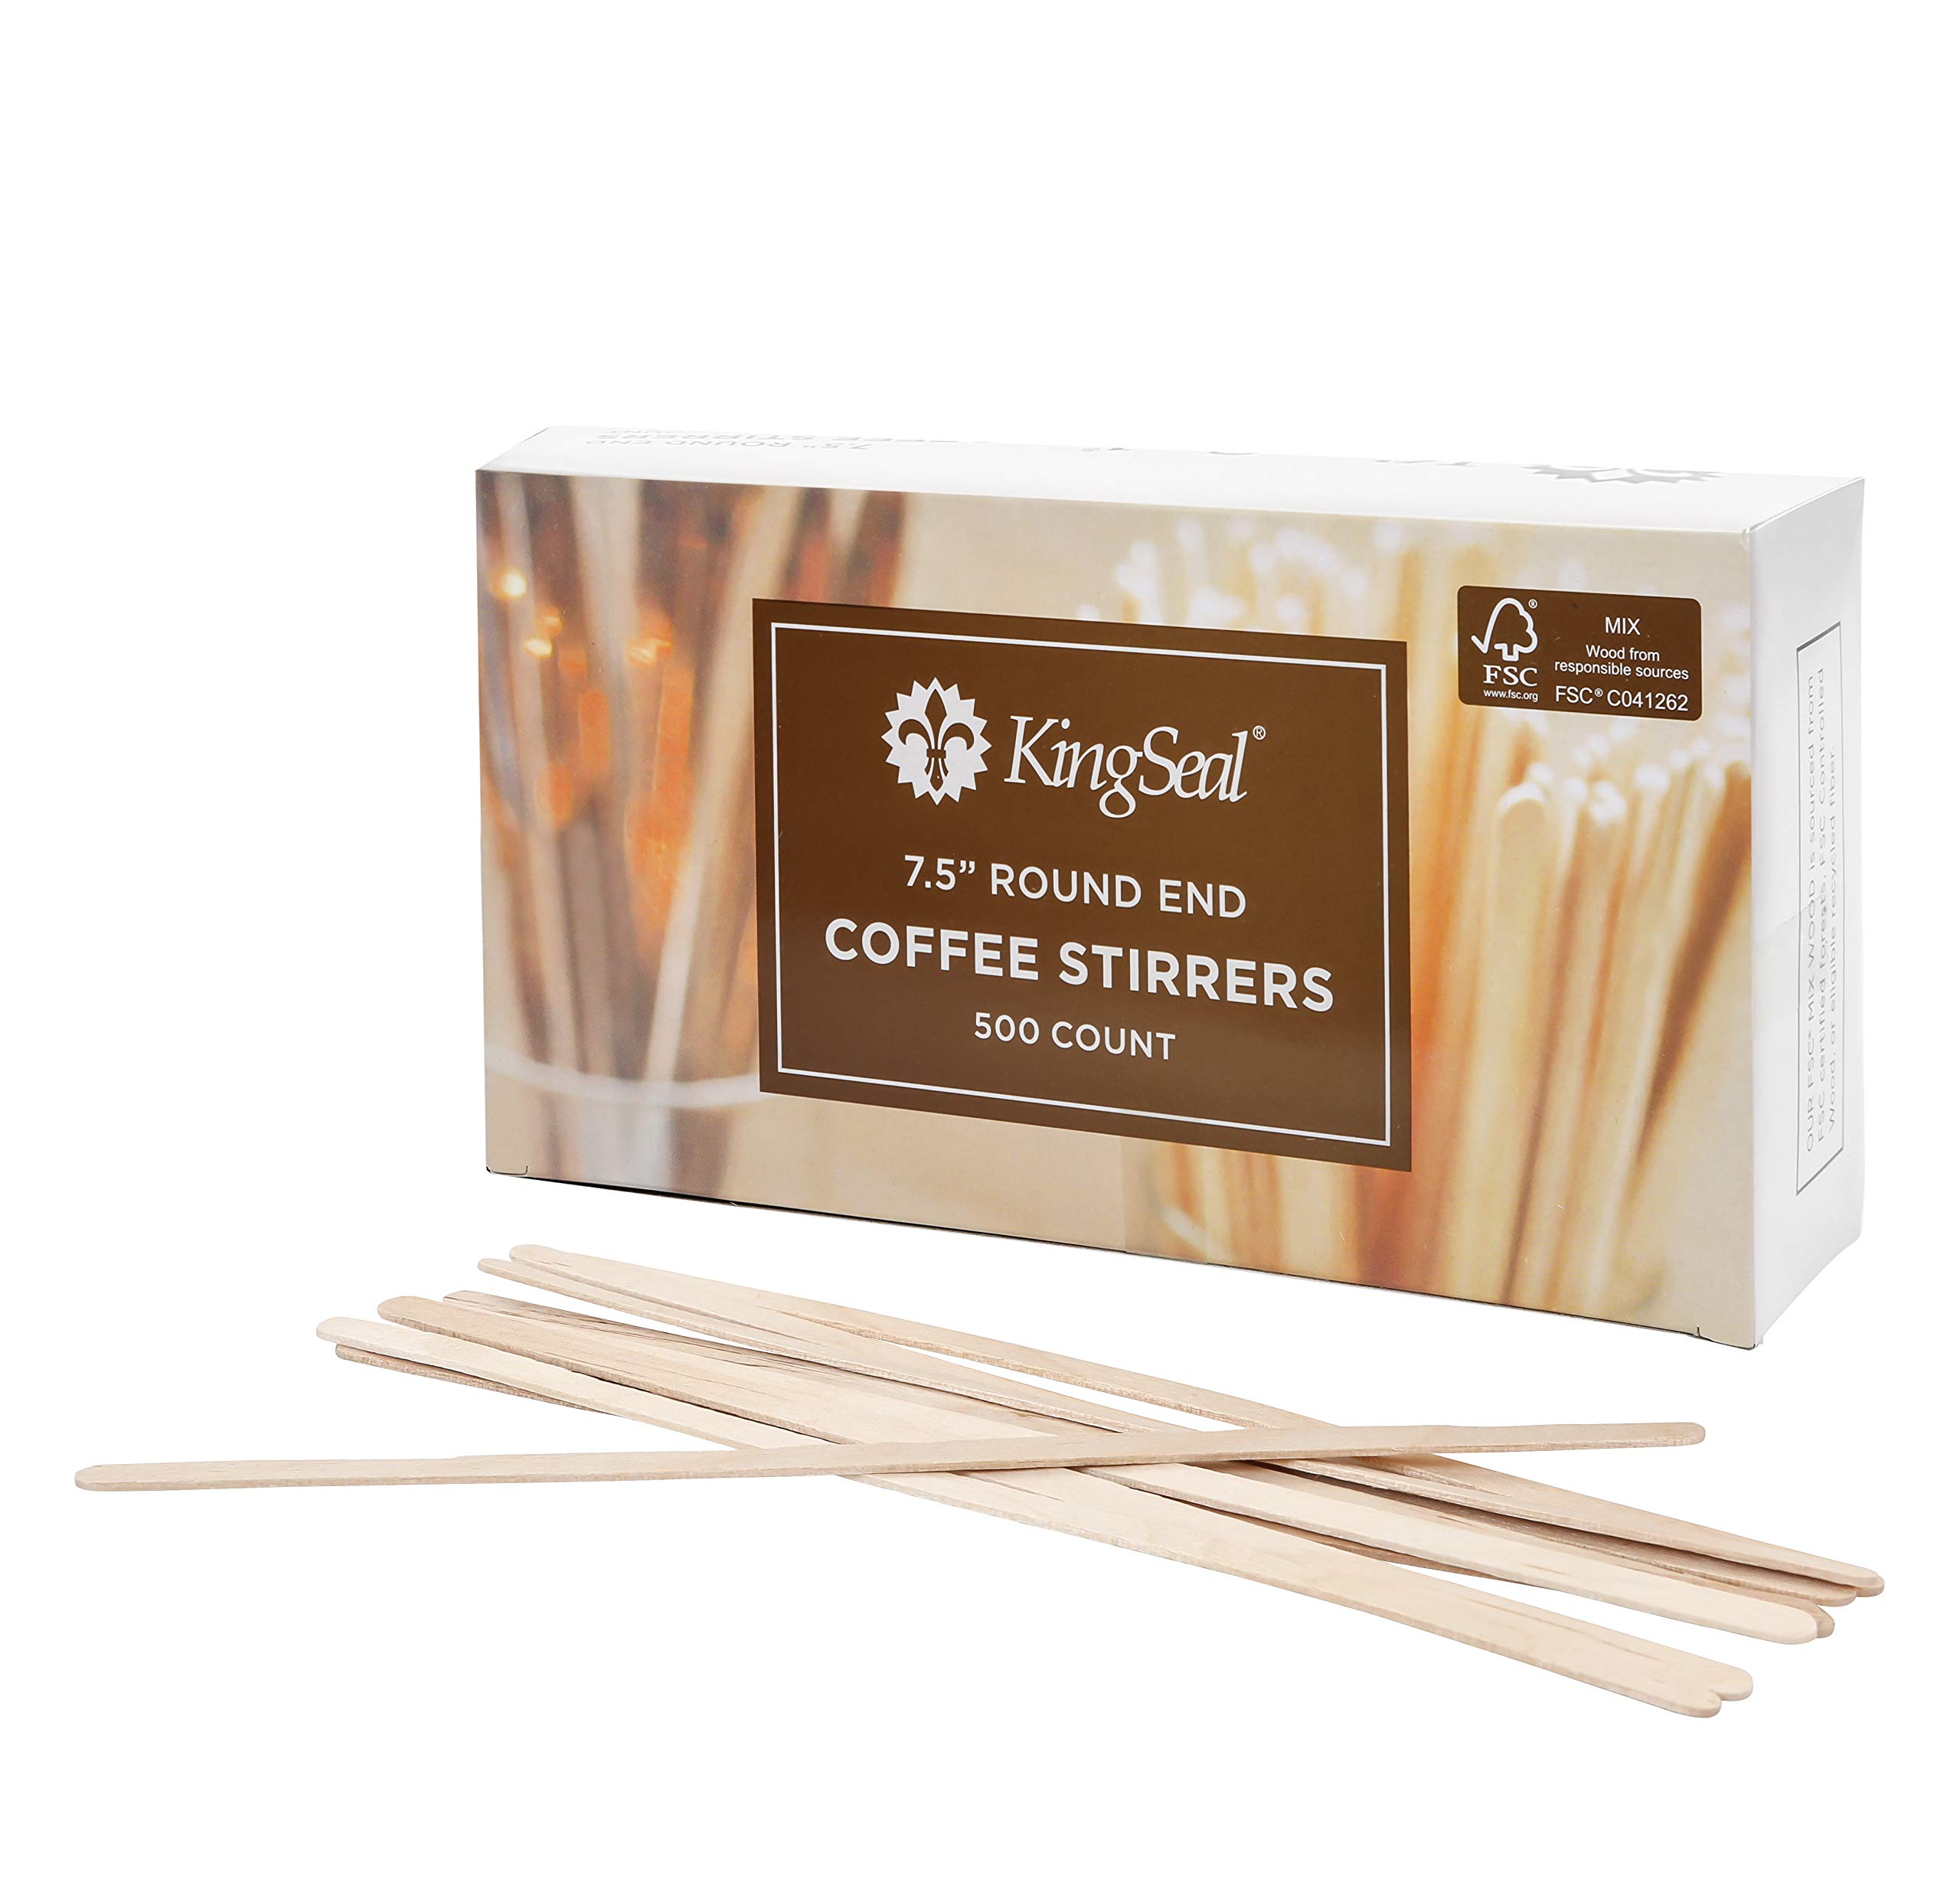 KingSeal FSC Certified Sustainably Sourced Birch Wood Coffee Stirrers, Stir Sticks - 7.5 Inches, Round End, 10 Packs of 500 per Case